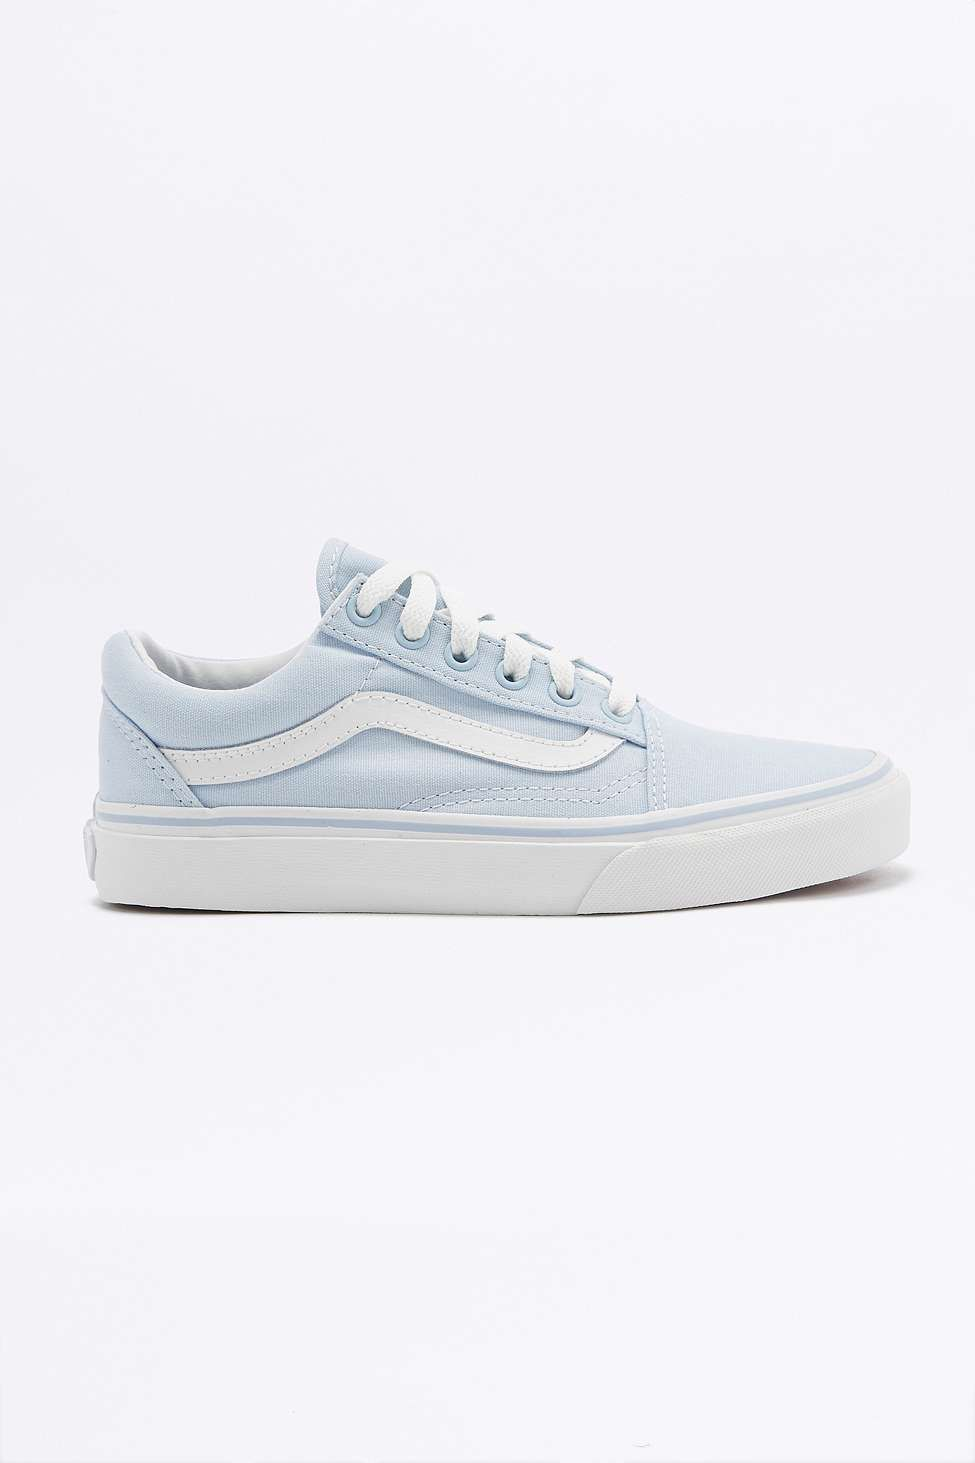 9c9ca36c185 Vans Old Skool Baby Blue Trainers Pezinho